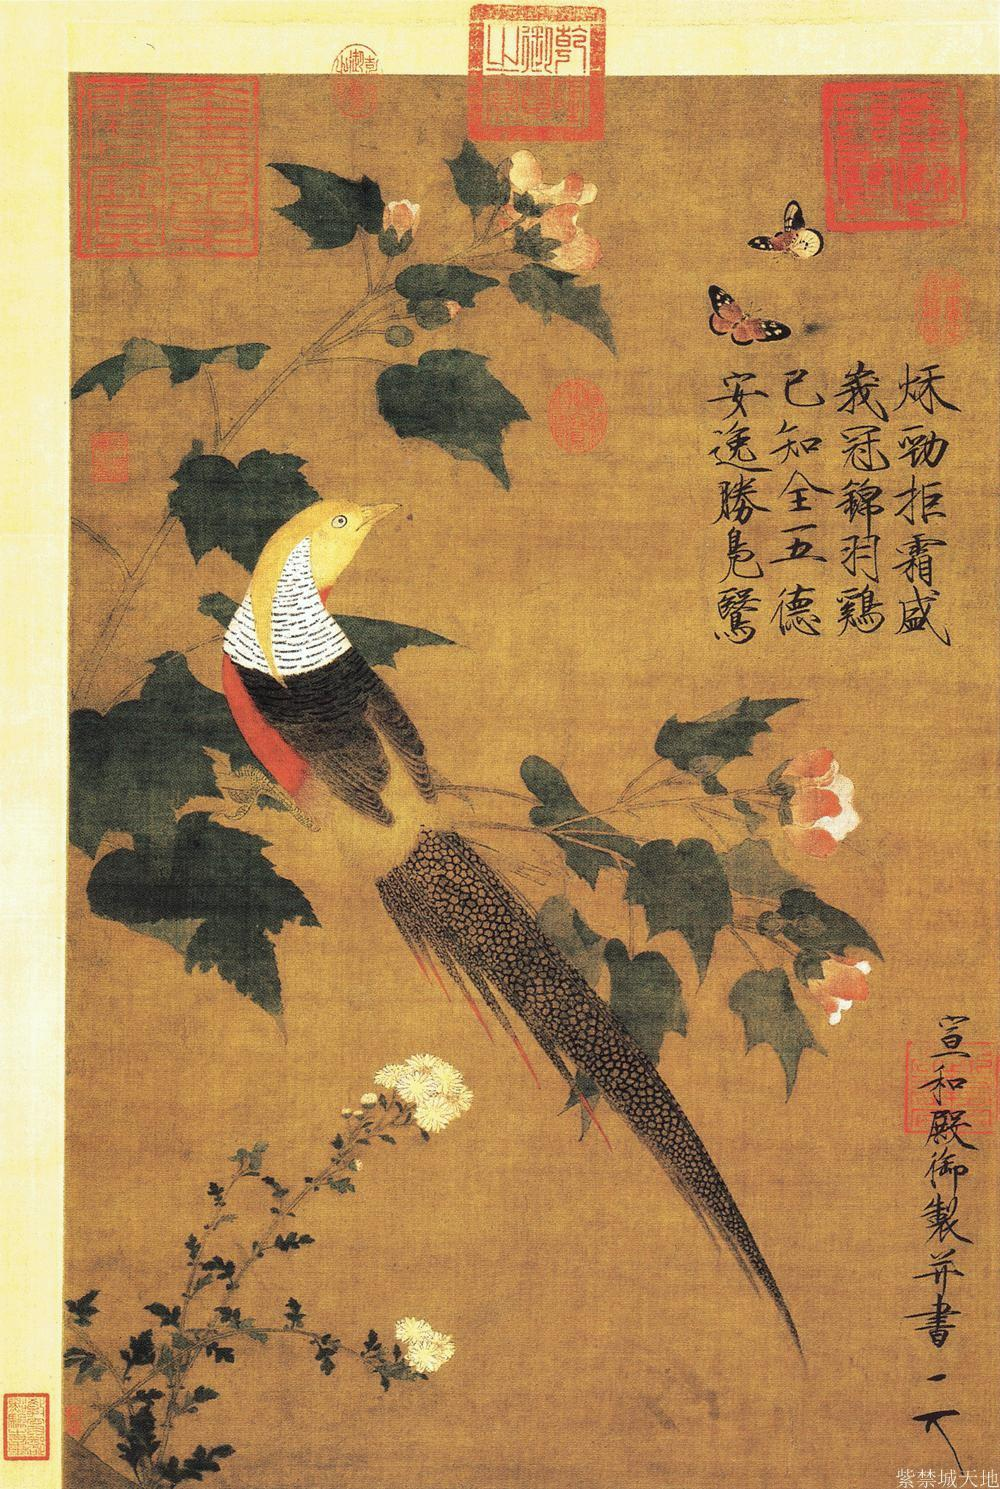 Golden Pheasant and Cotton Rose Flowers (11th century) by Emperor Huizong, in Gongbi style | Source: wikiart.org